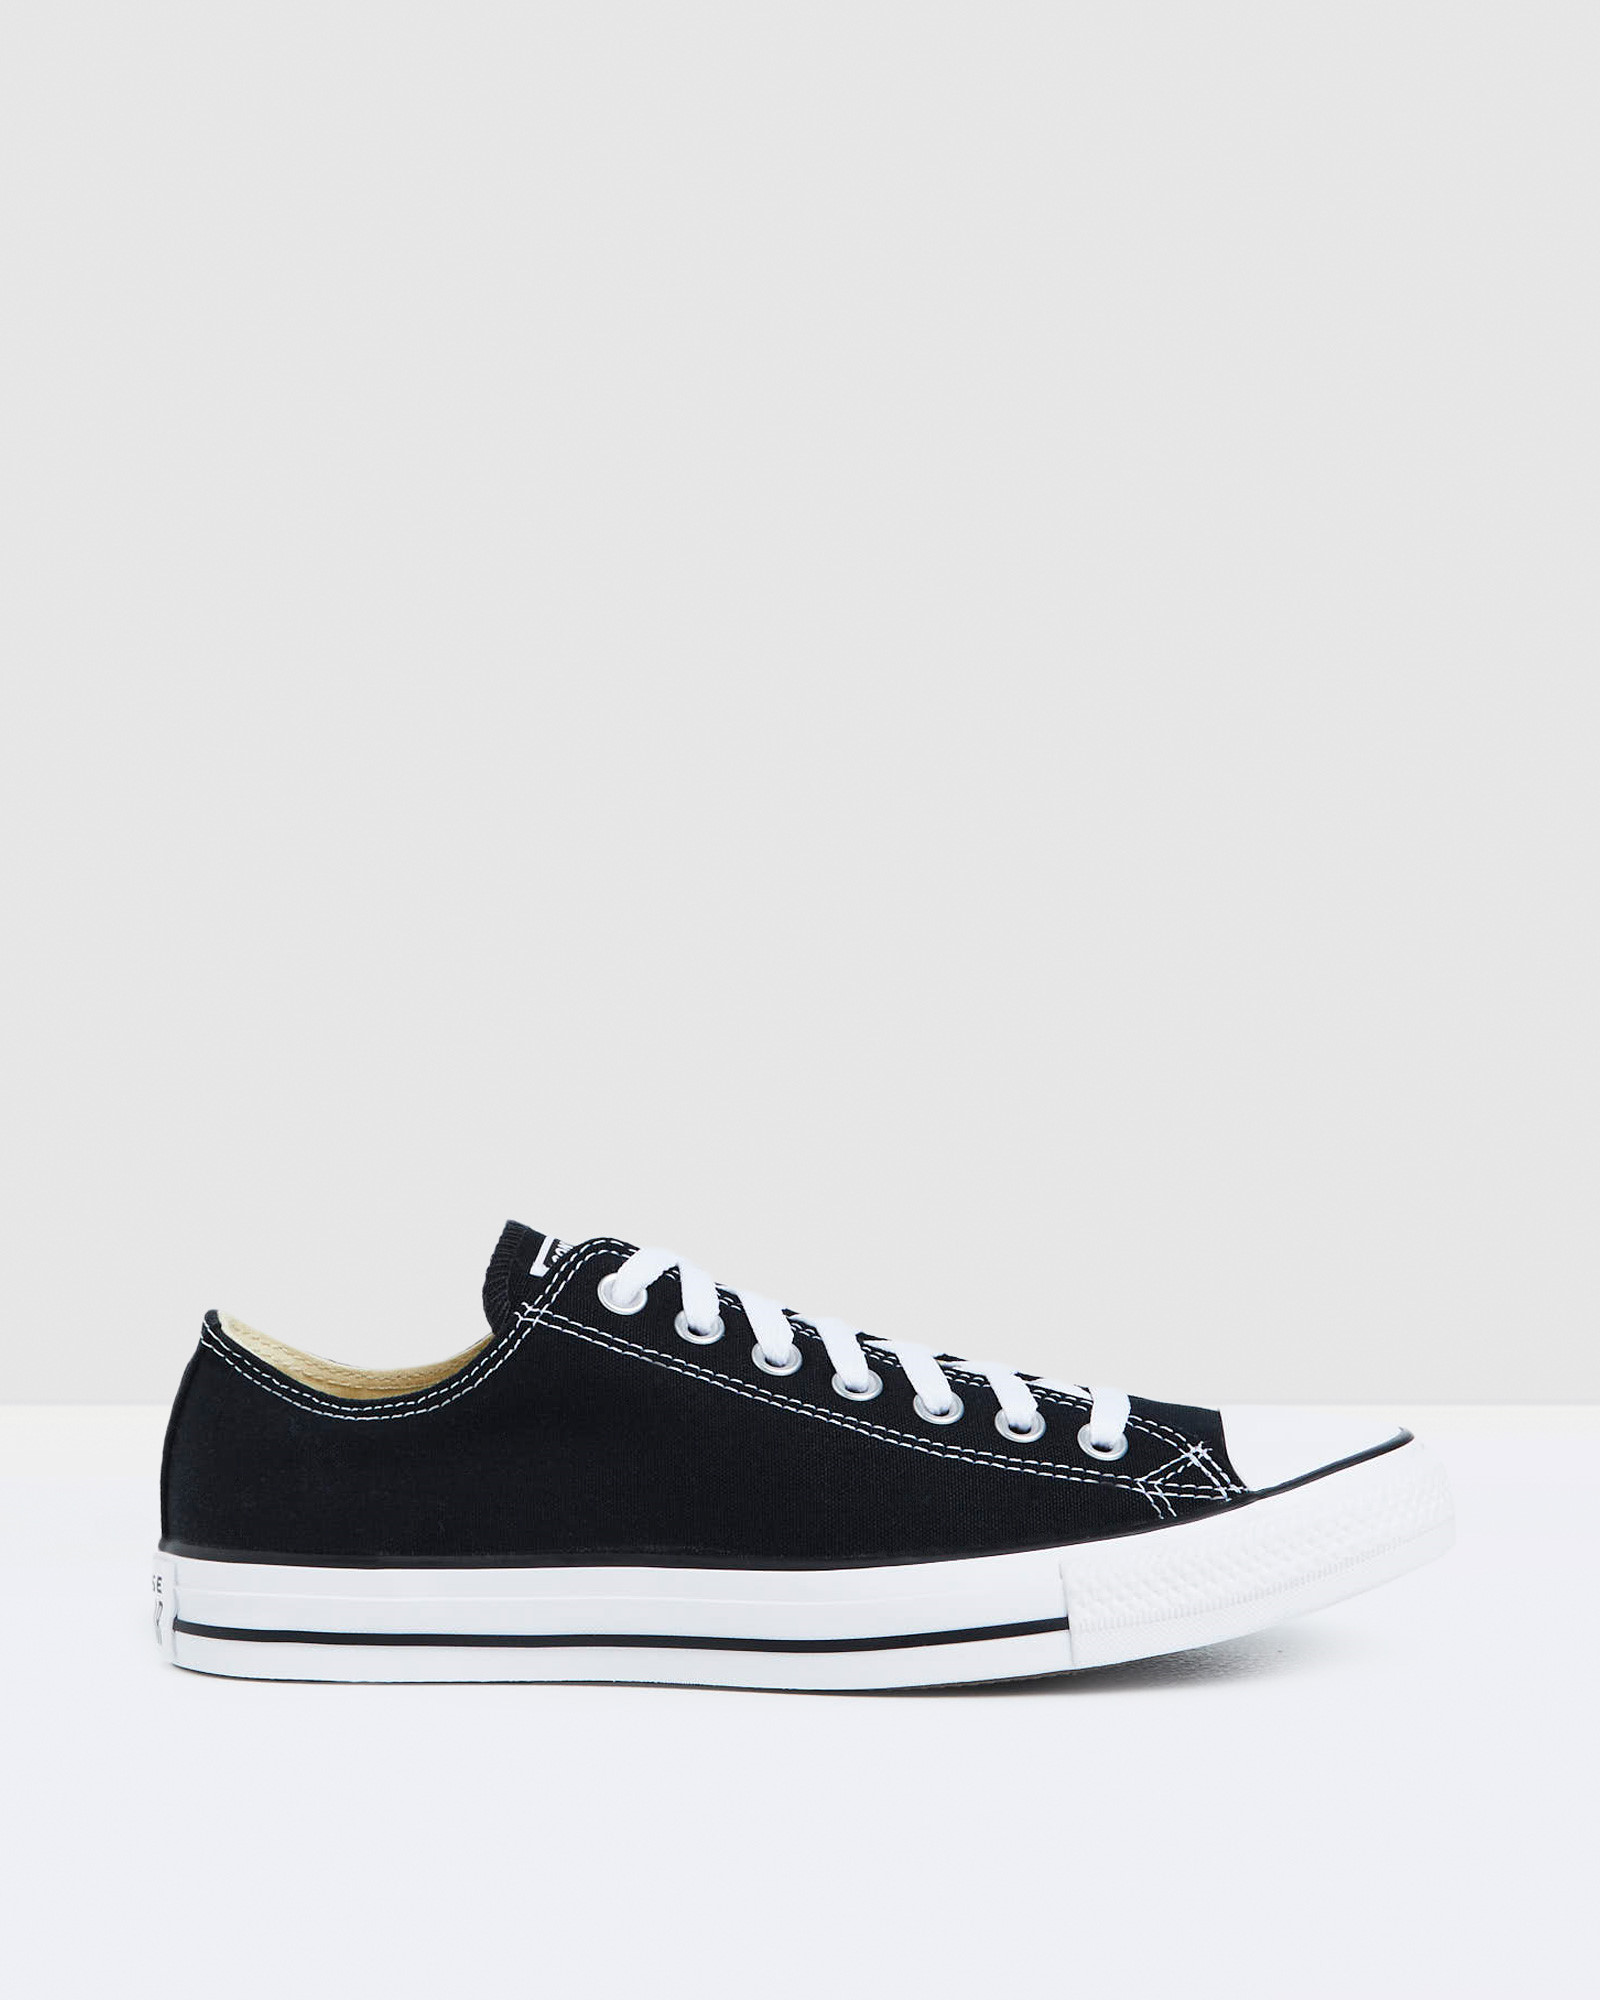 b56c549e8142 Converse Chuck Taylor All Star Dainty Leather Sneakers White ...